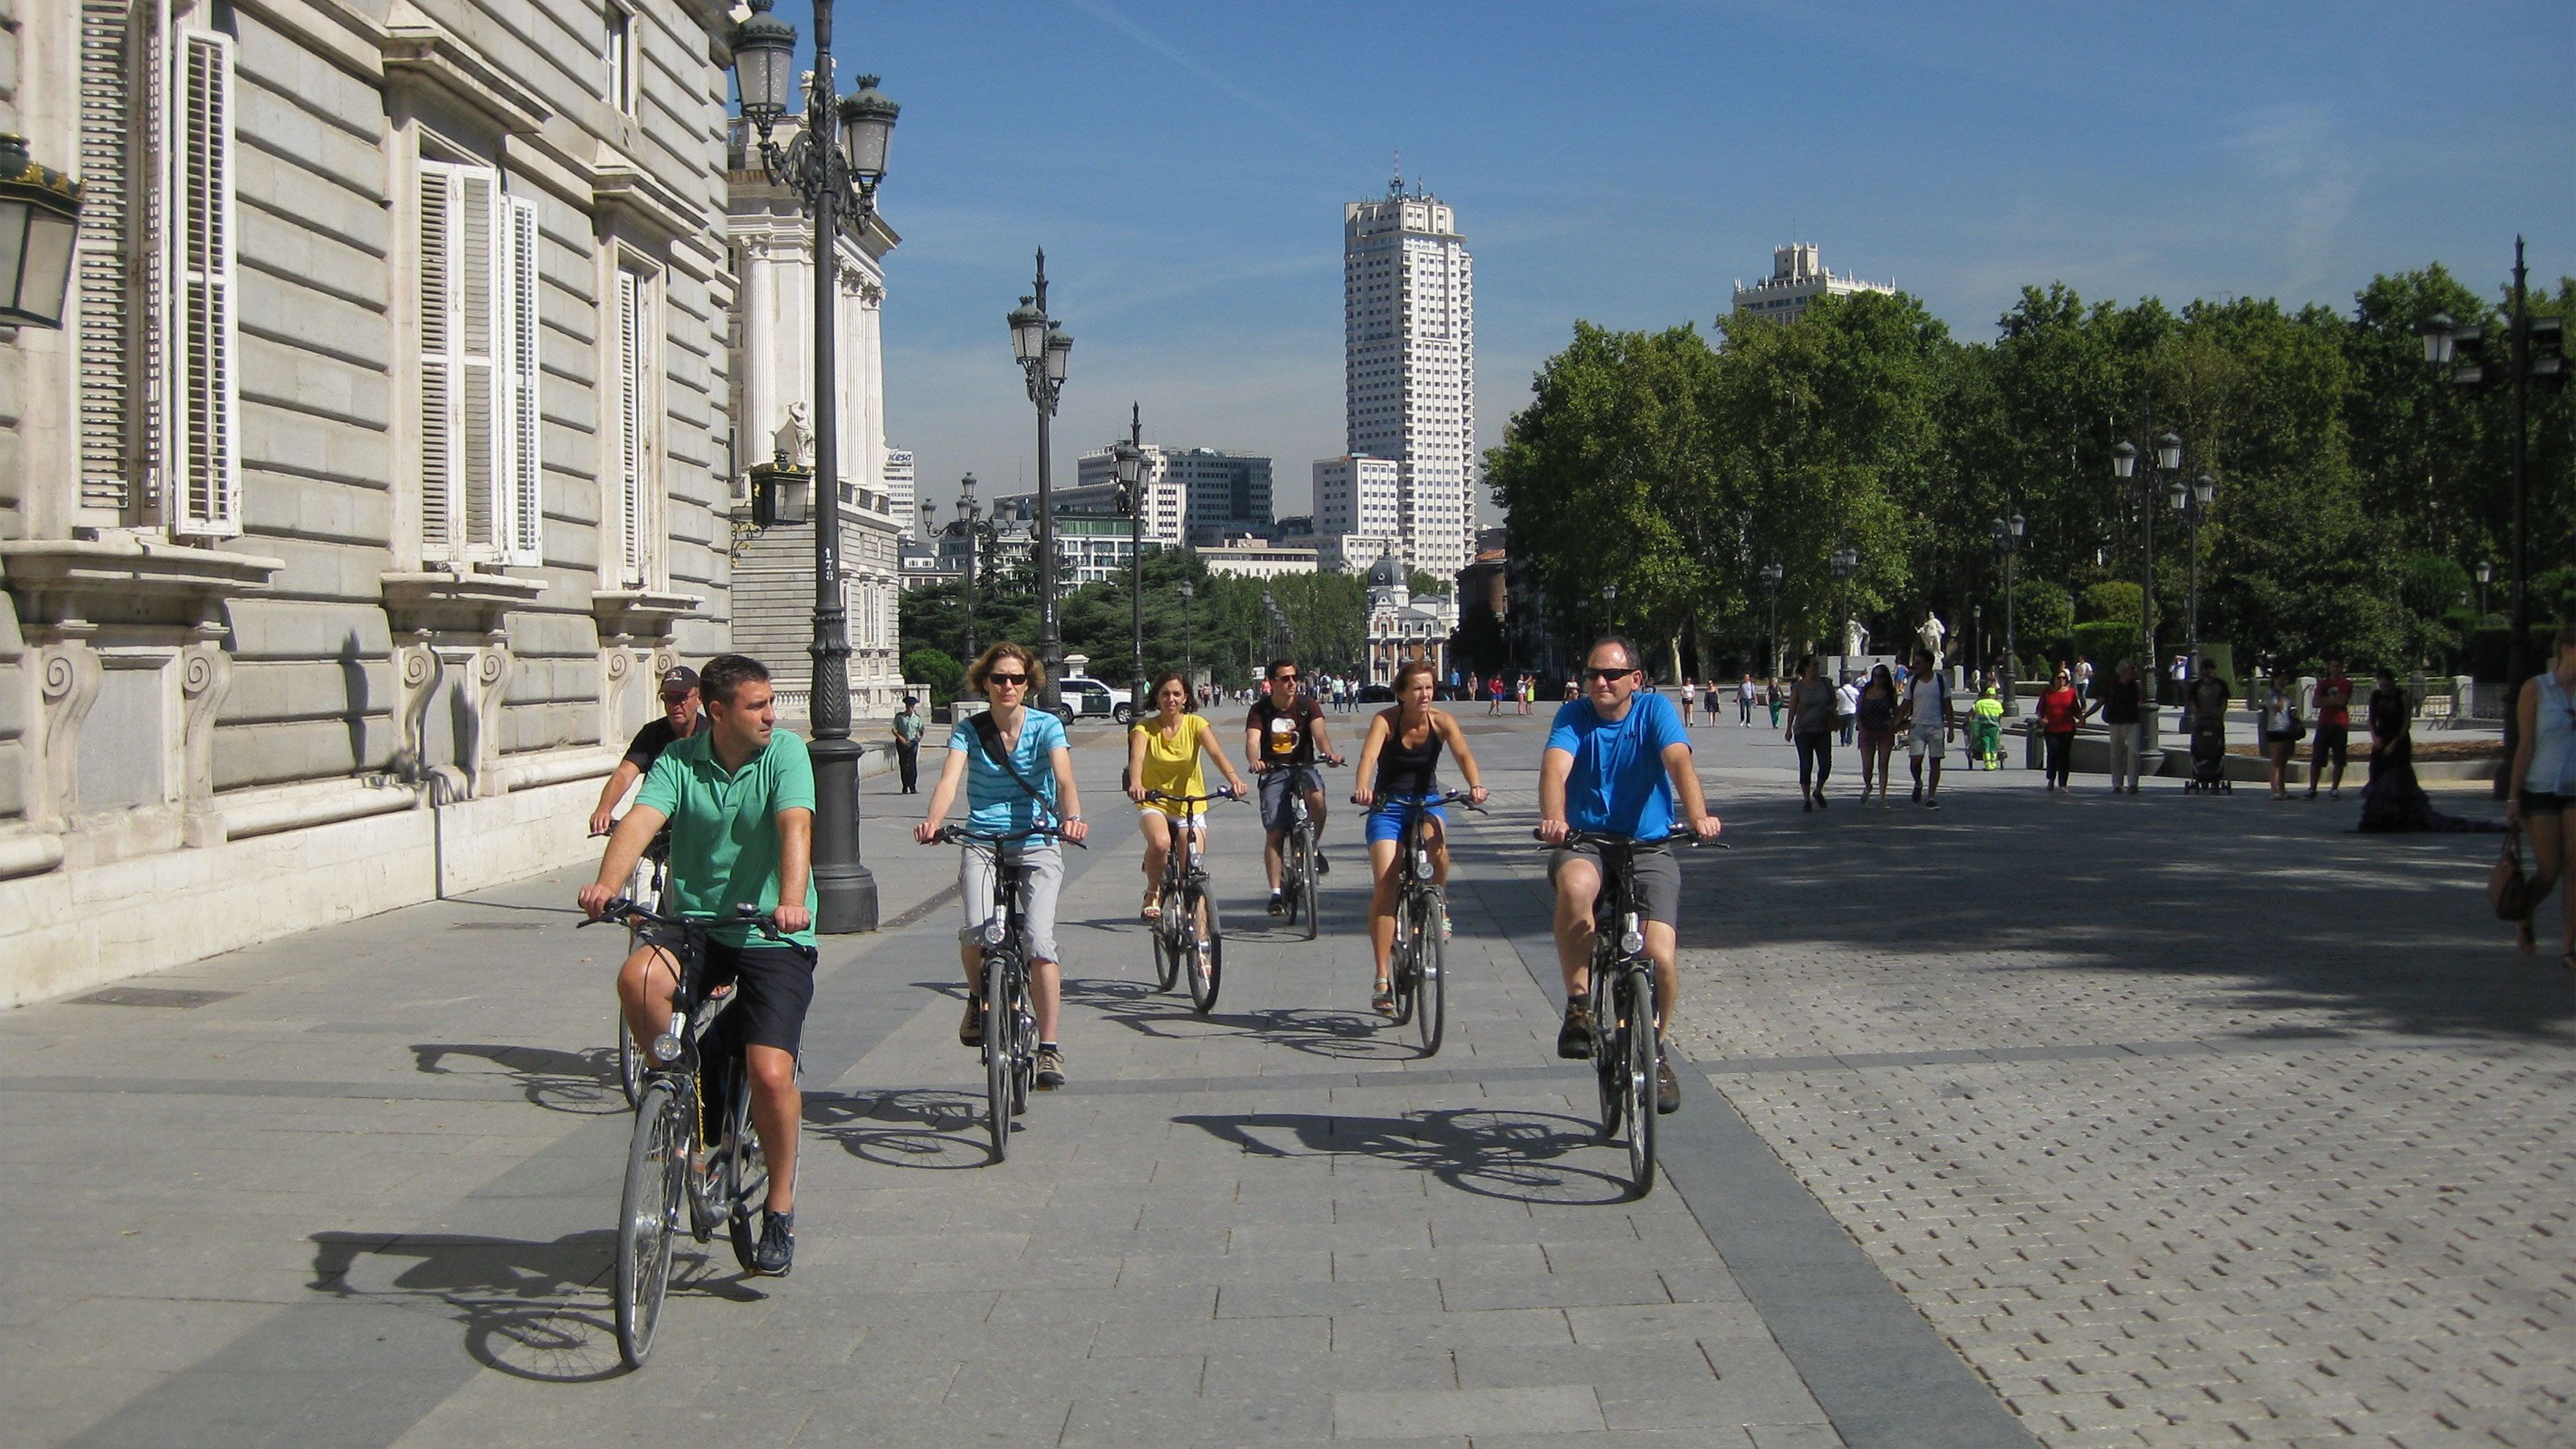 A group bicycling tour on the city streets of Madrid